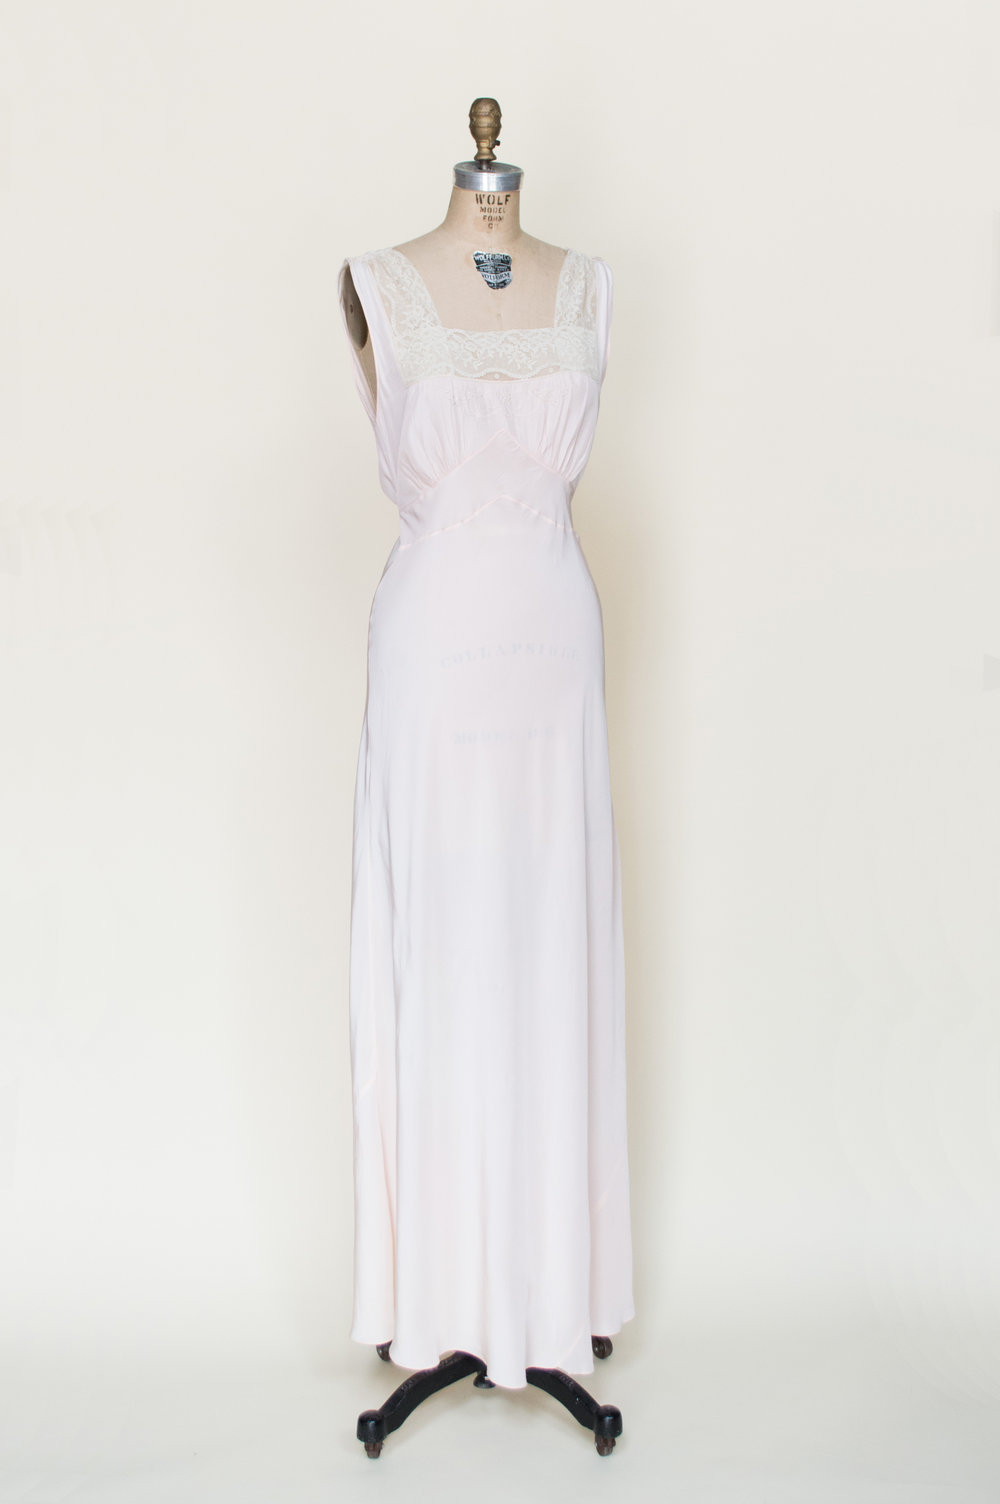 1940s Rayon Nightgown